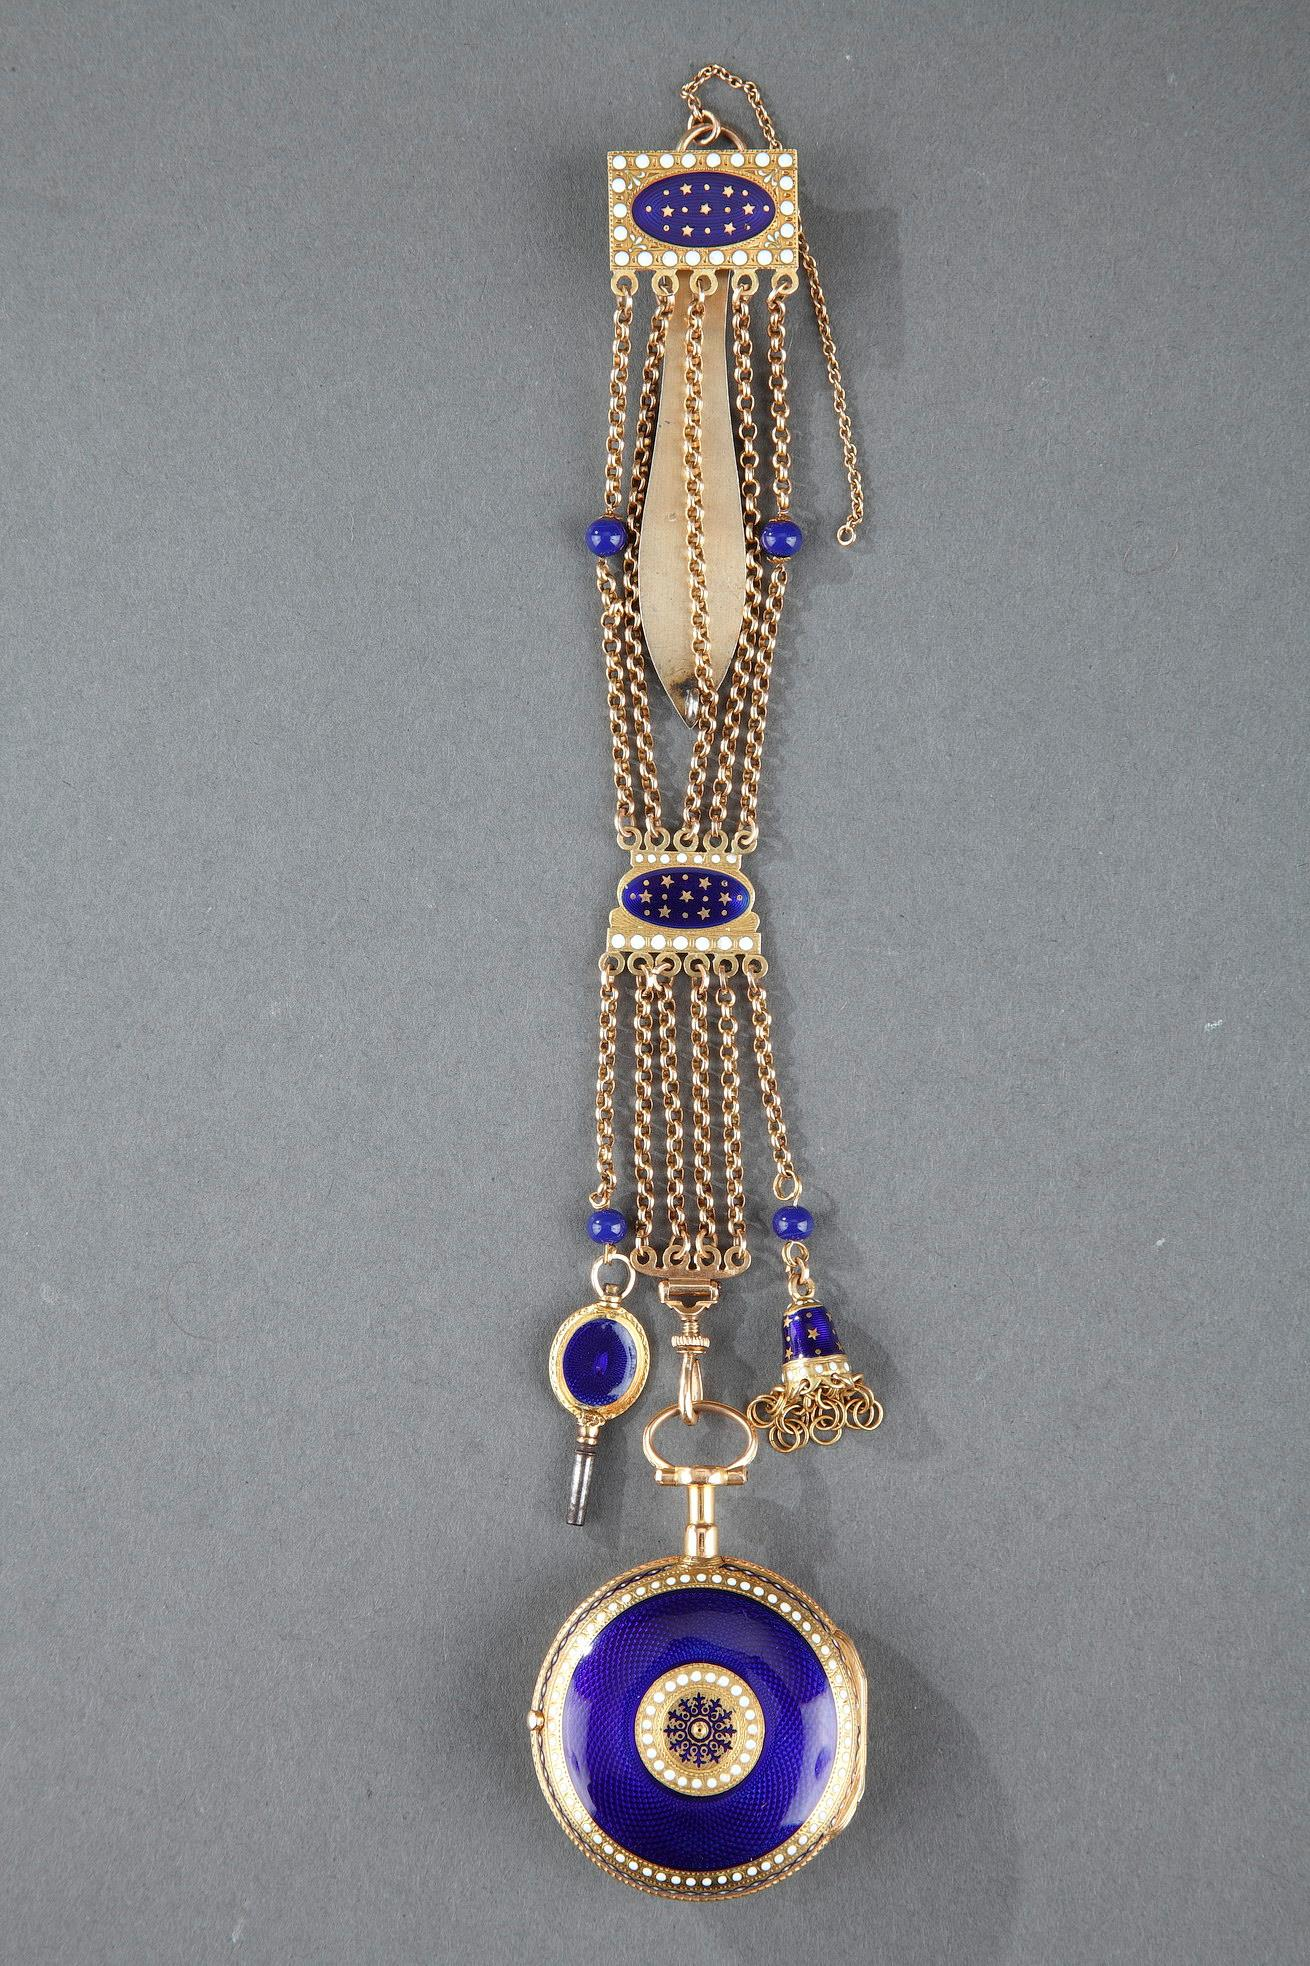 Enameled Gold Chatelaine with Watch by C-T Guenoux.<br> 18th Century.